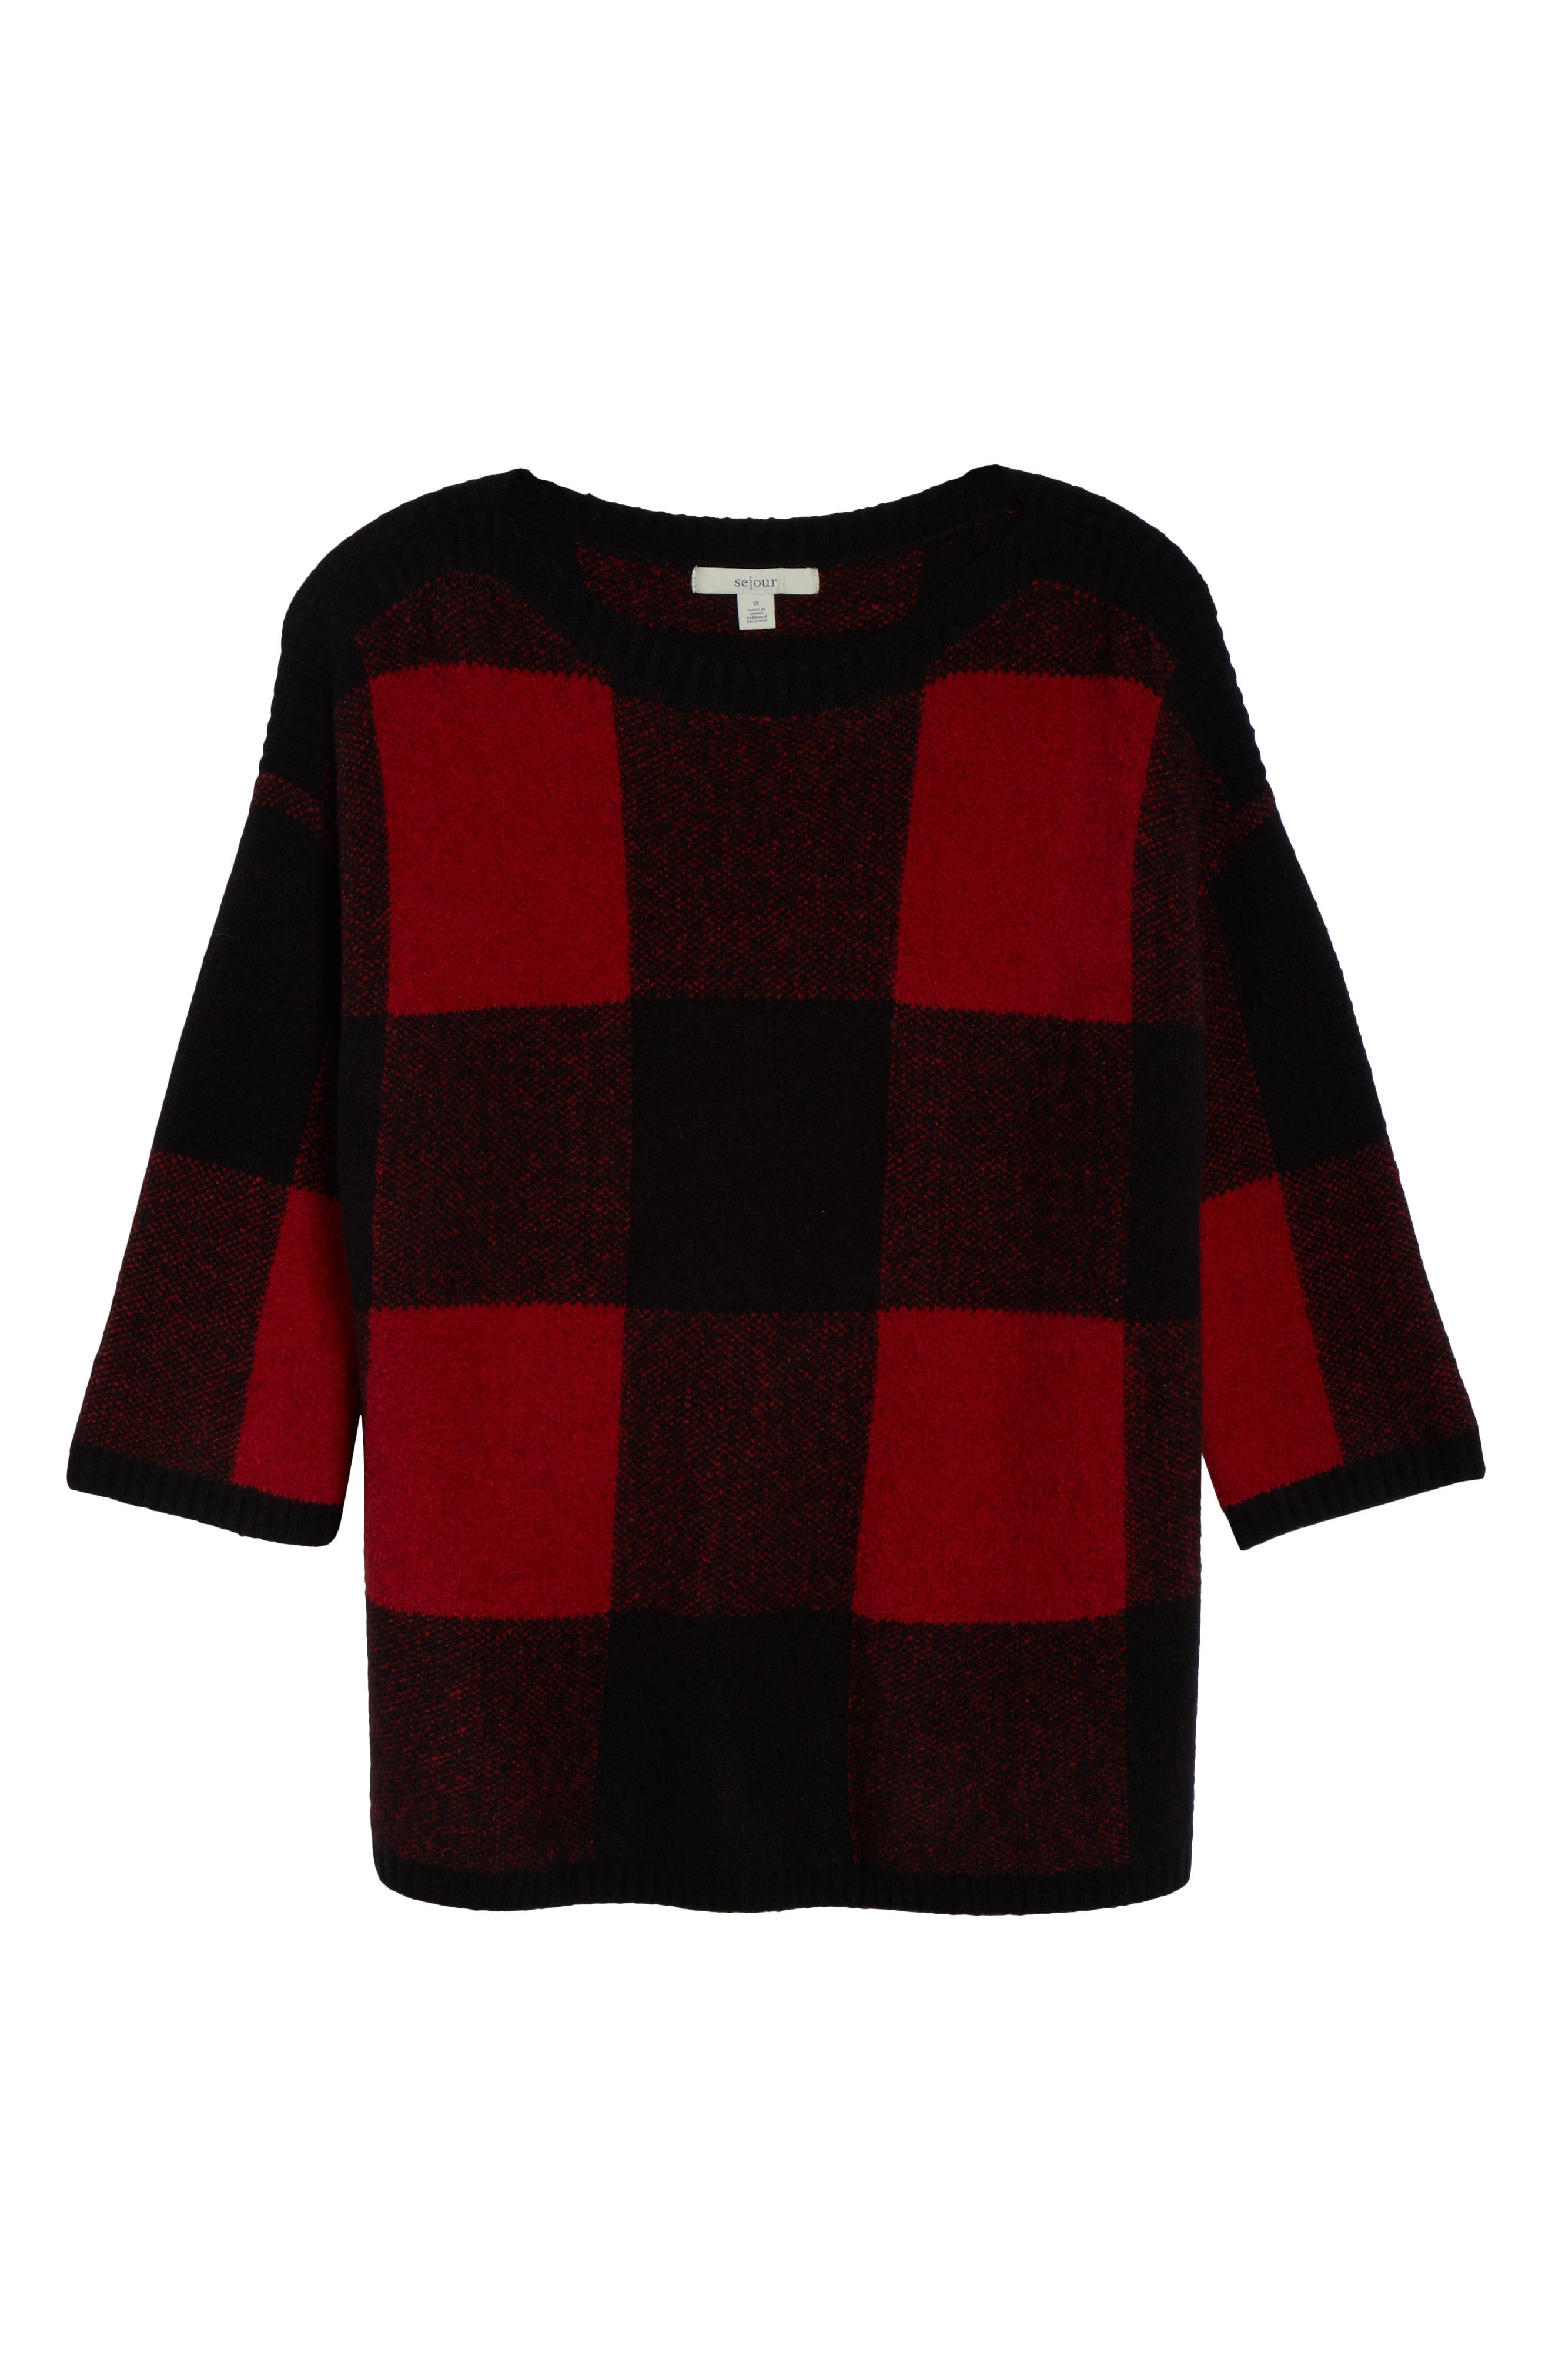 SEJOUR, Buffalo Plaid Sweater, Alternate thumbnail 6, color, BLACK-RED BUFFALO CHECK